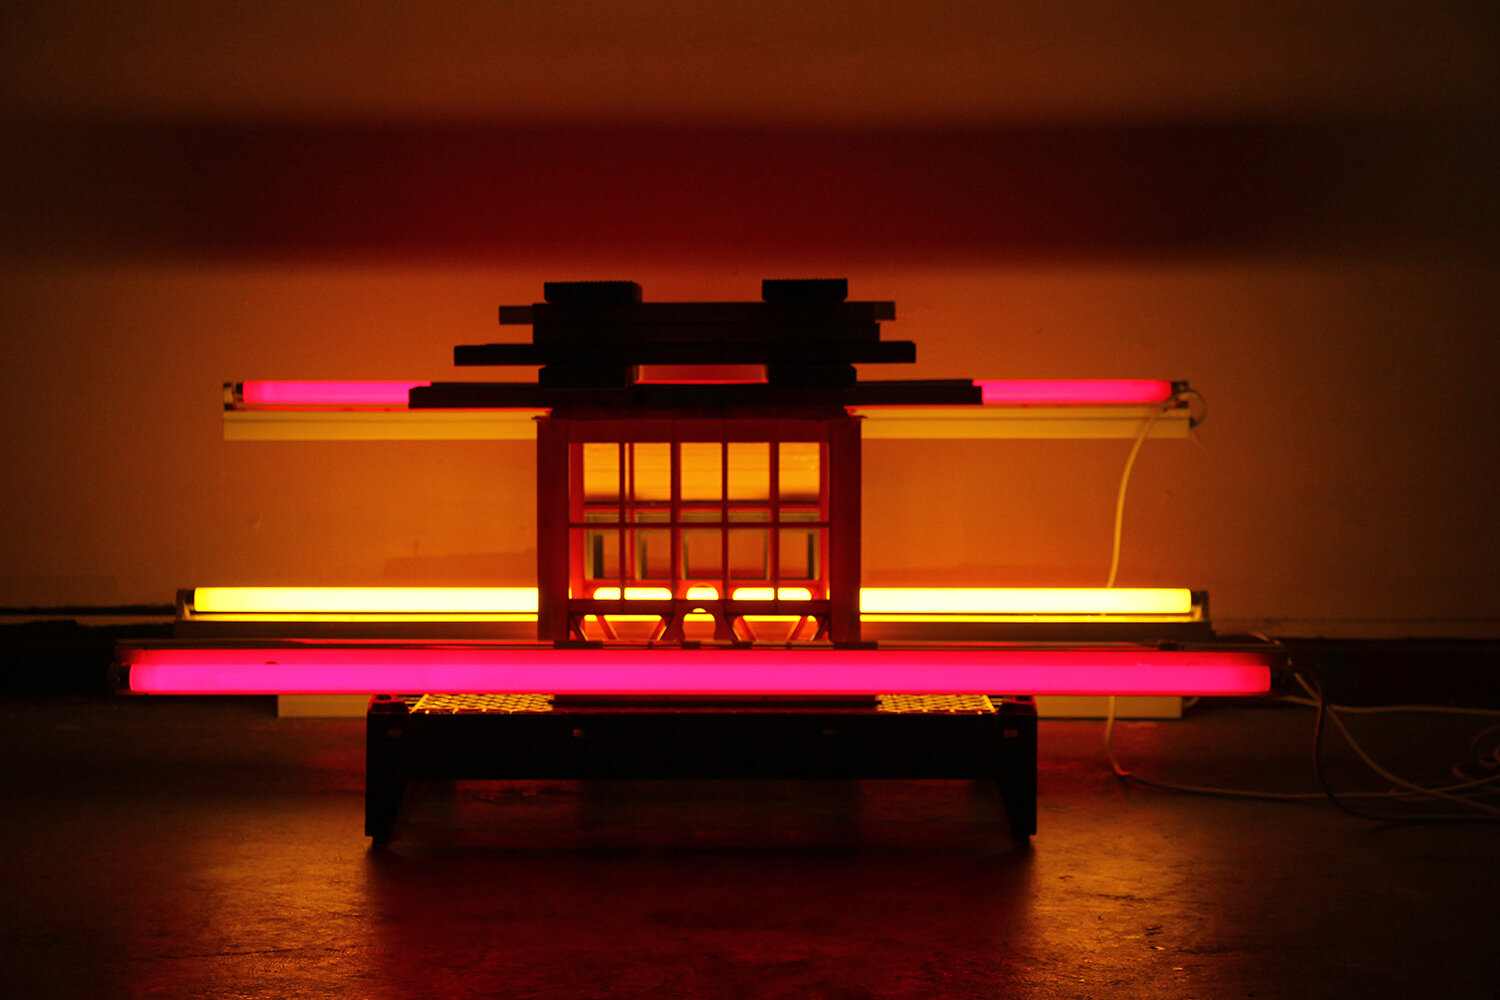 tokyo nights , 2017.  Materials: Fluorescent tubes, wood, plastic crates. Dimensions: variable. Project Space, Boyd Temporary, Melbourne.